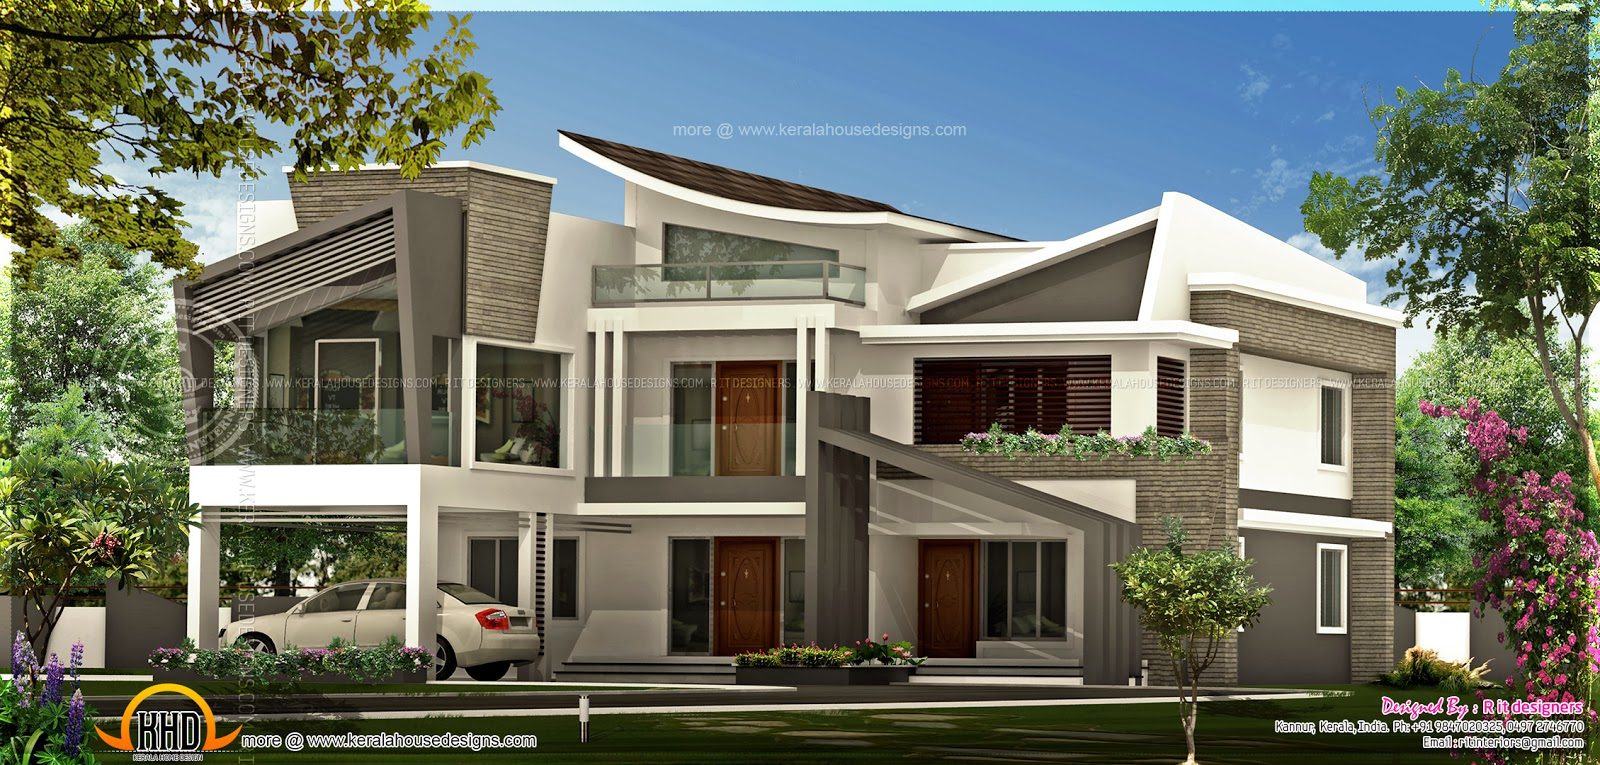 Unique contemporary luxury house kerala home design and for Unique house designs